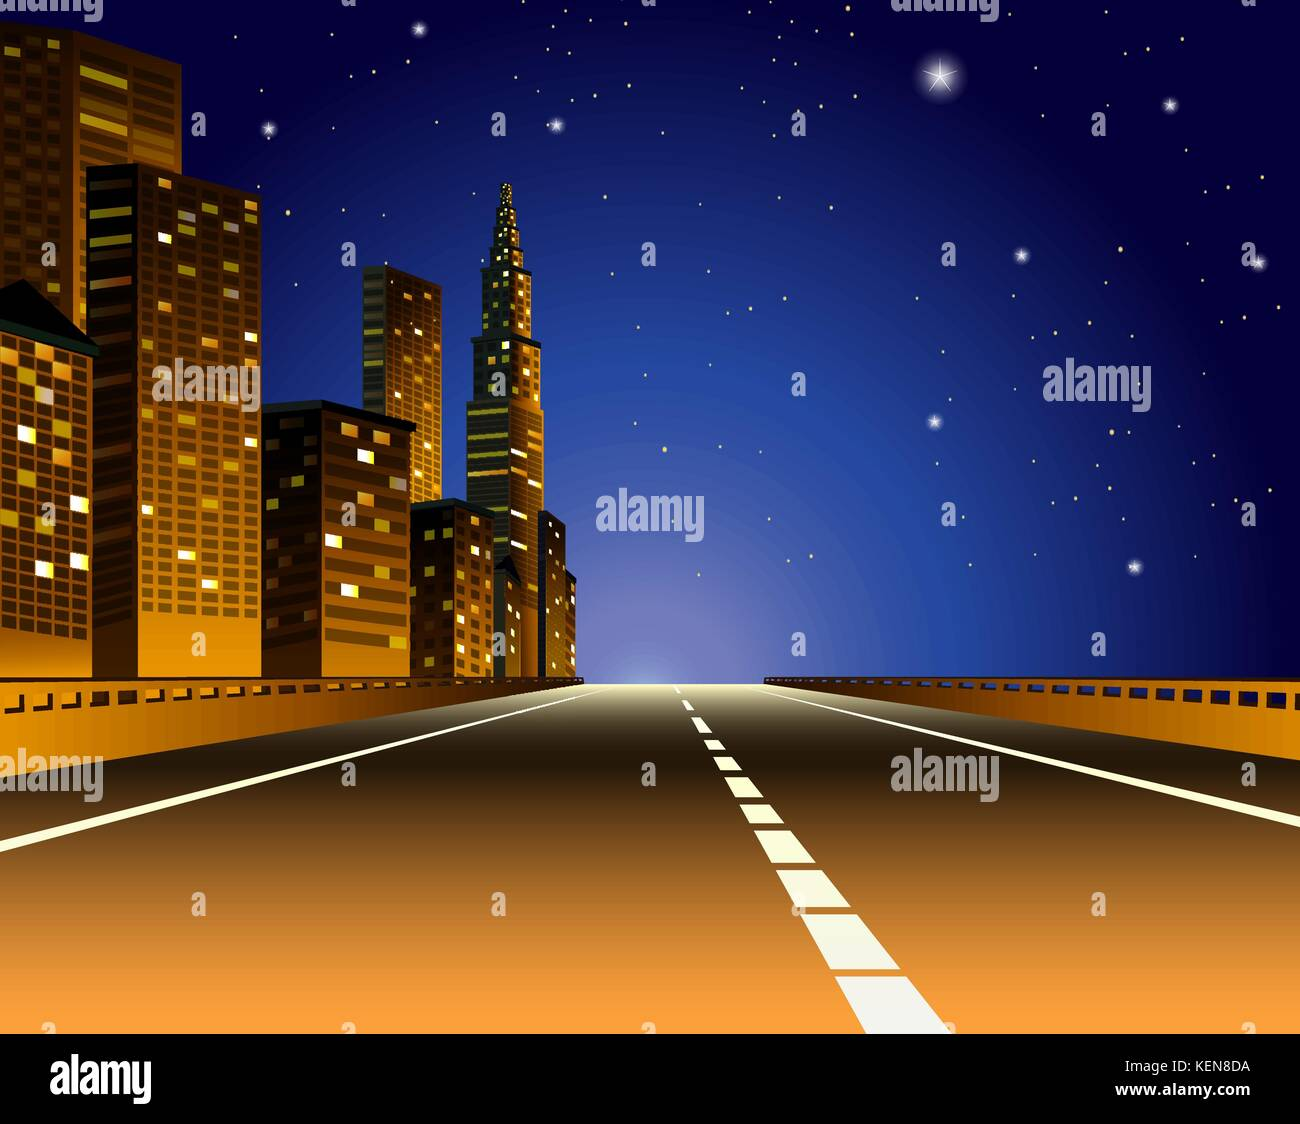 Illustration of a city view by the express way - Stock Vector